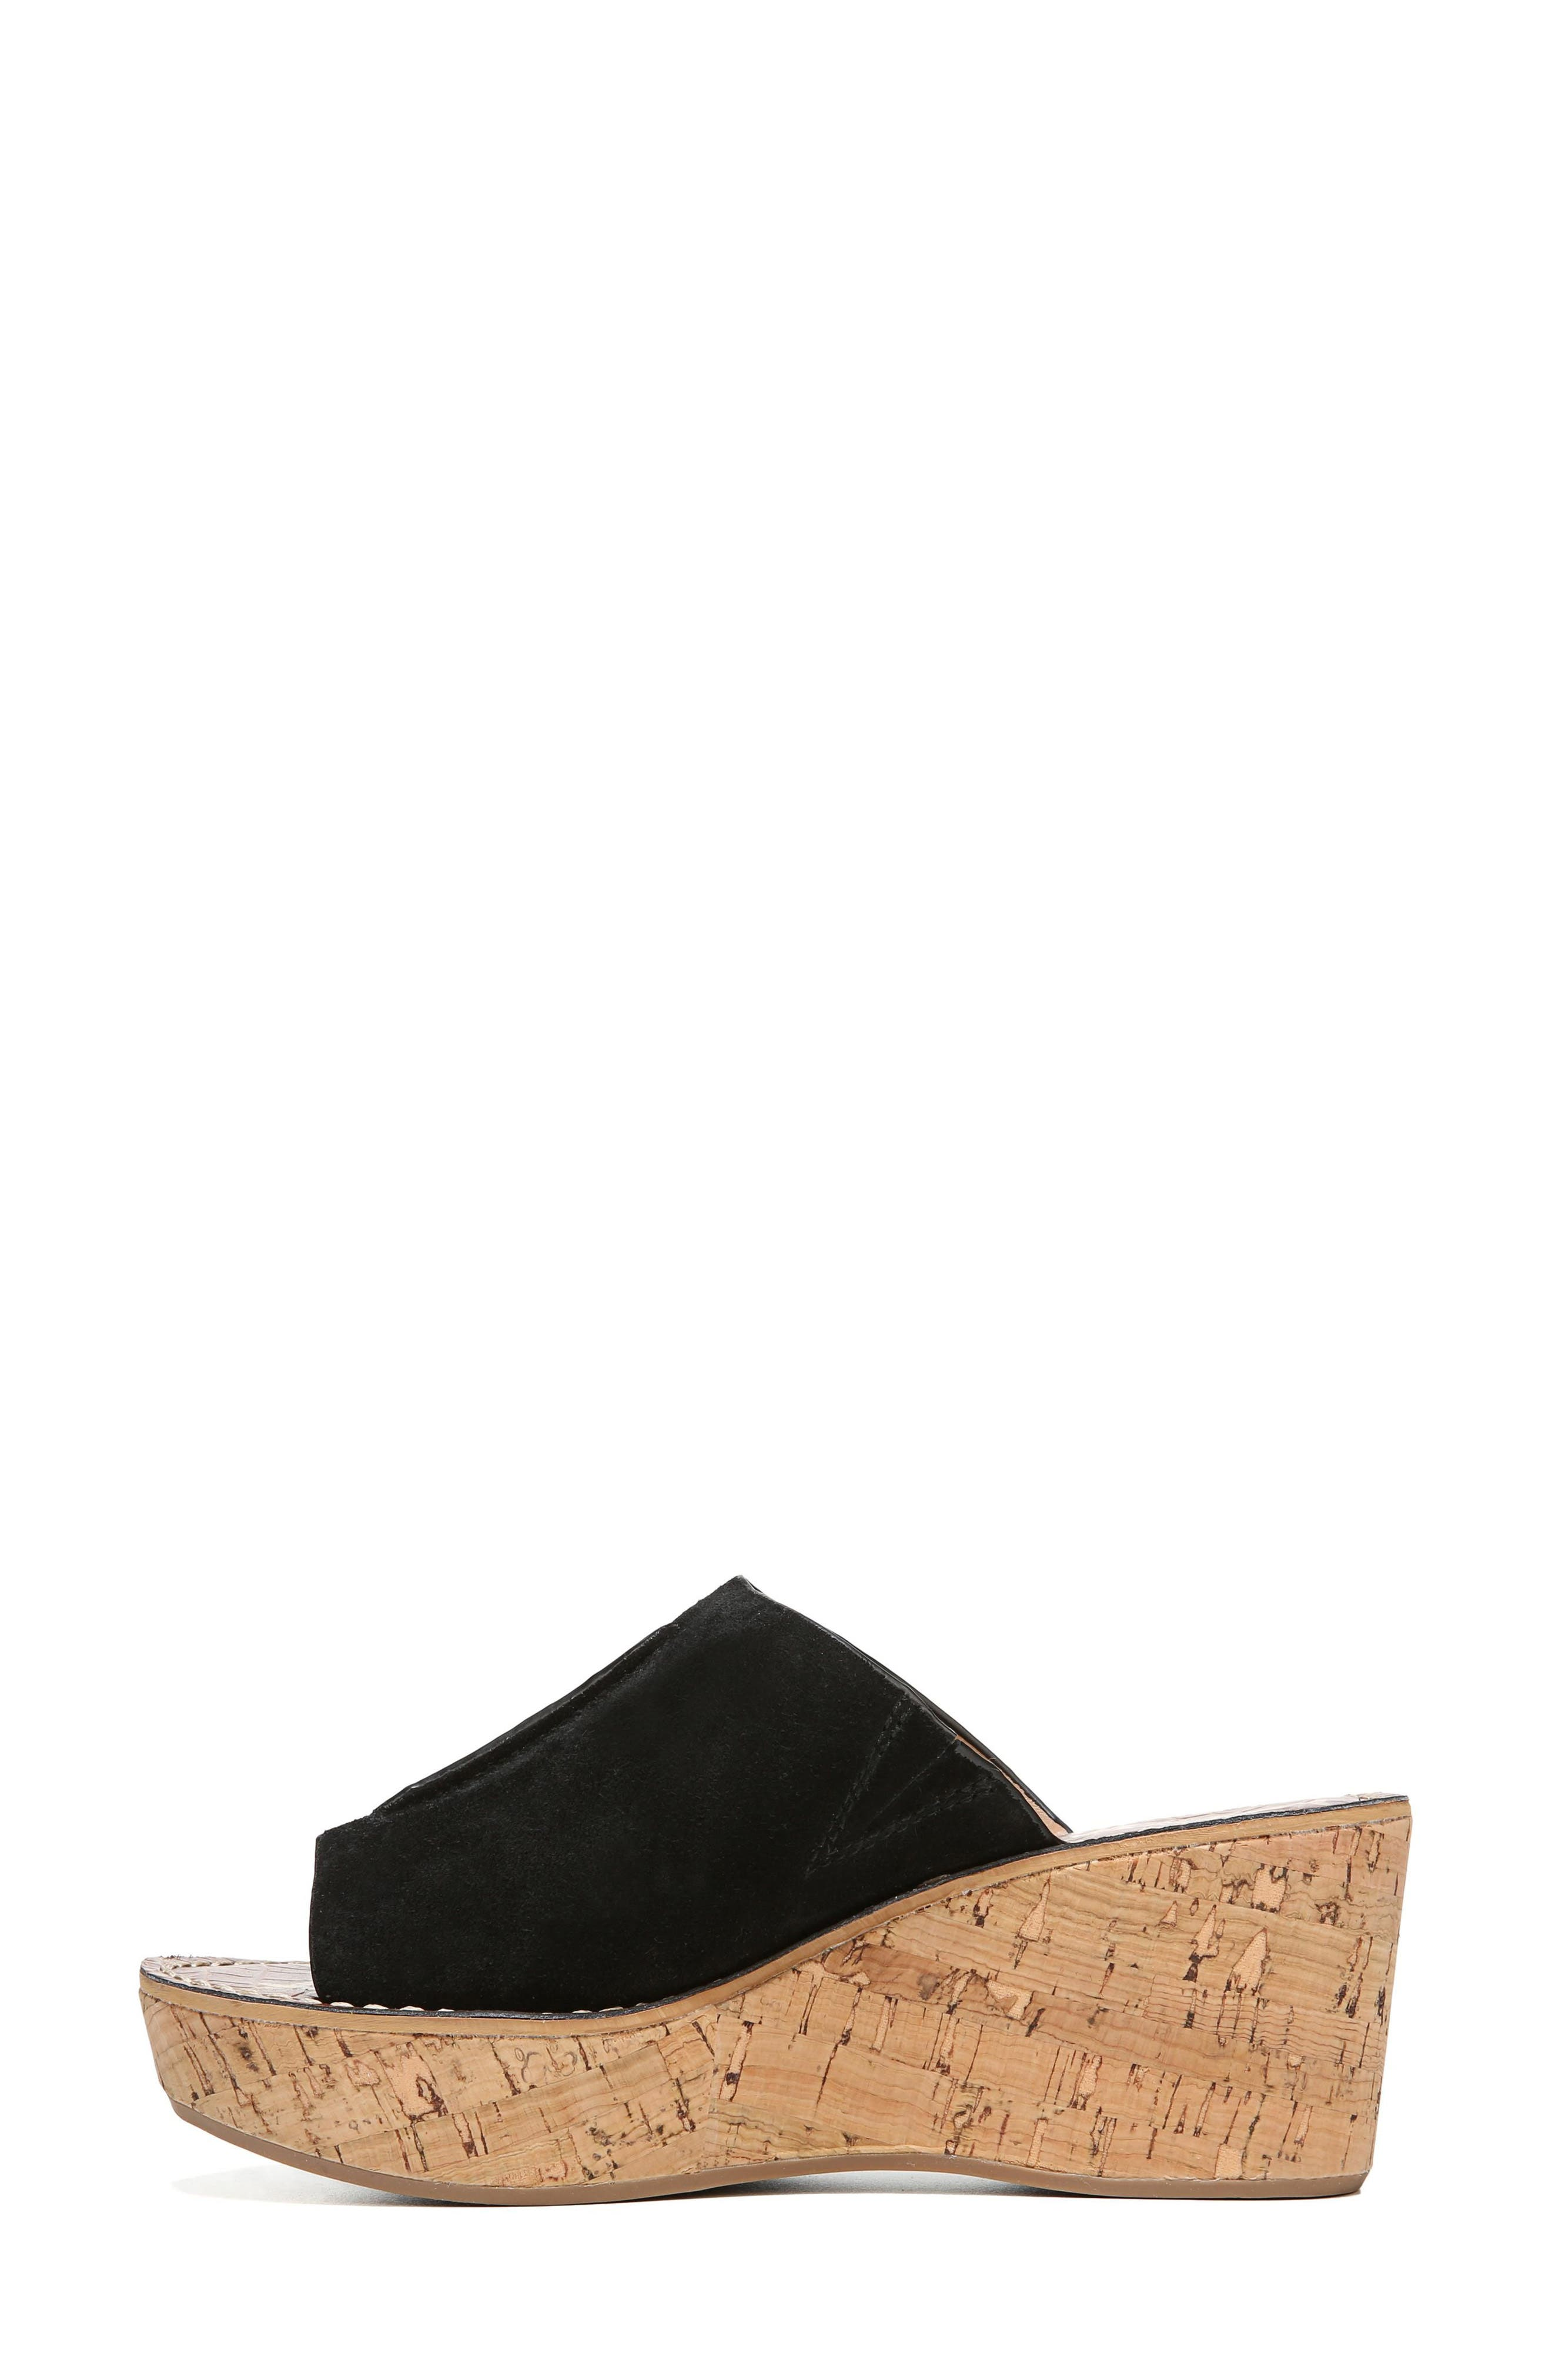 SAM EDELMAN, Ranger Platform Sandal, Alternate thumbnail 3, color, BLACK SUEDE